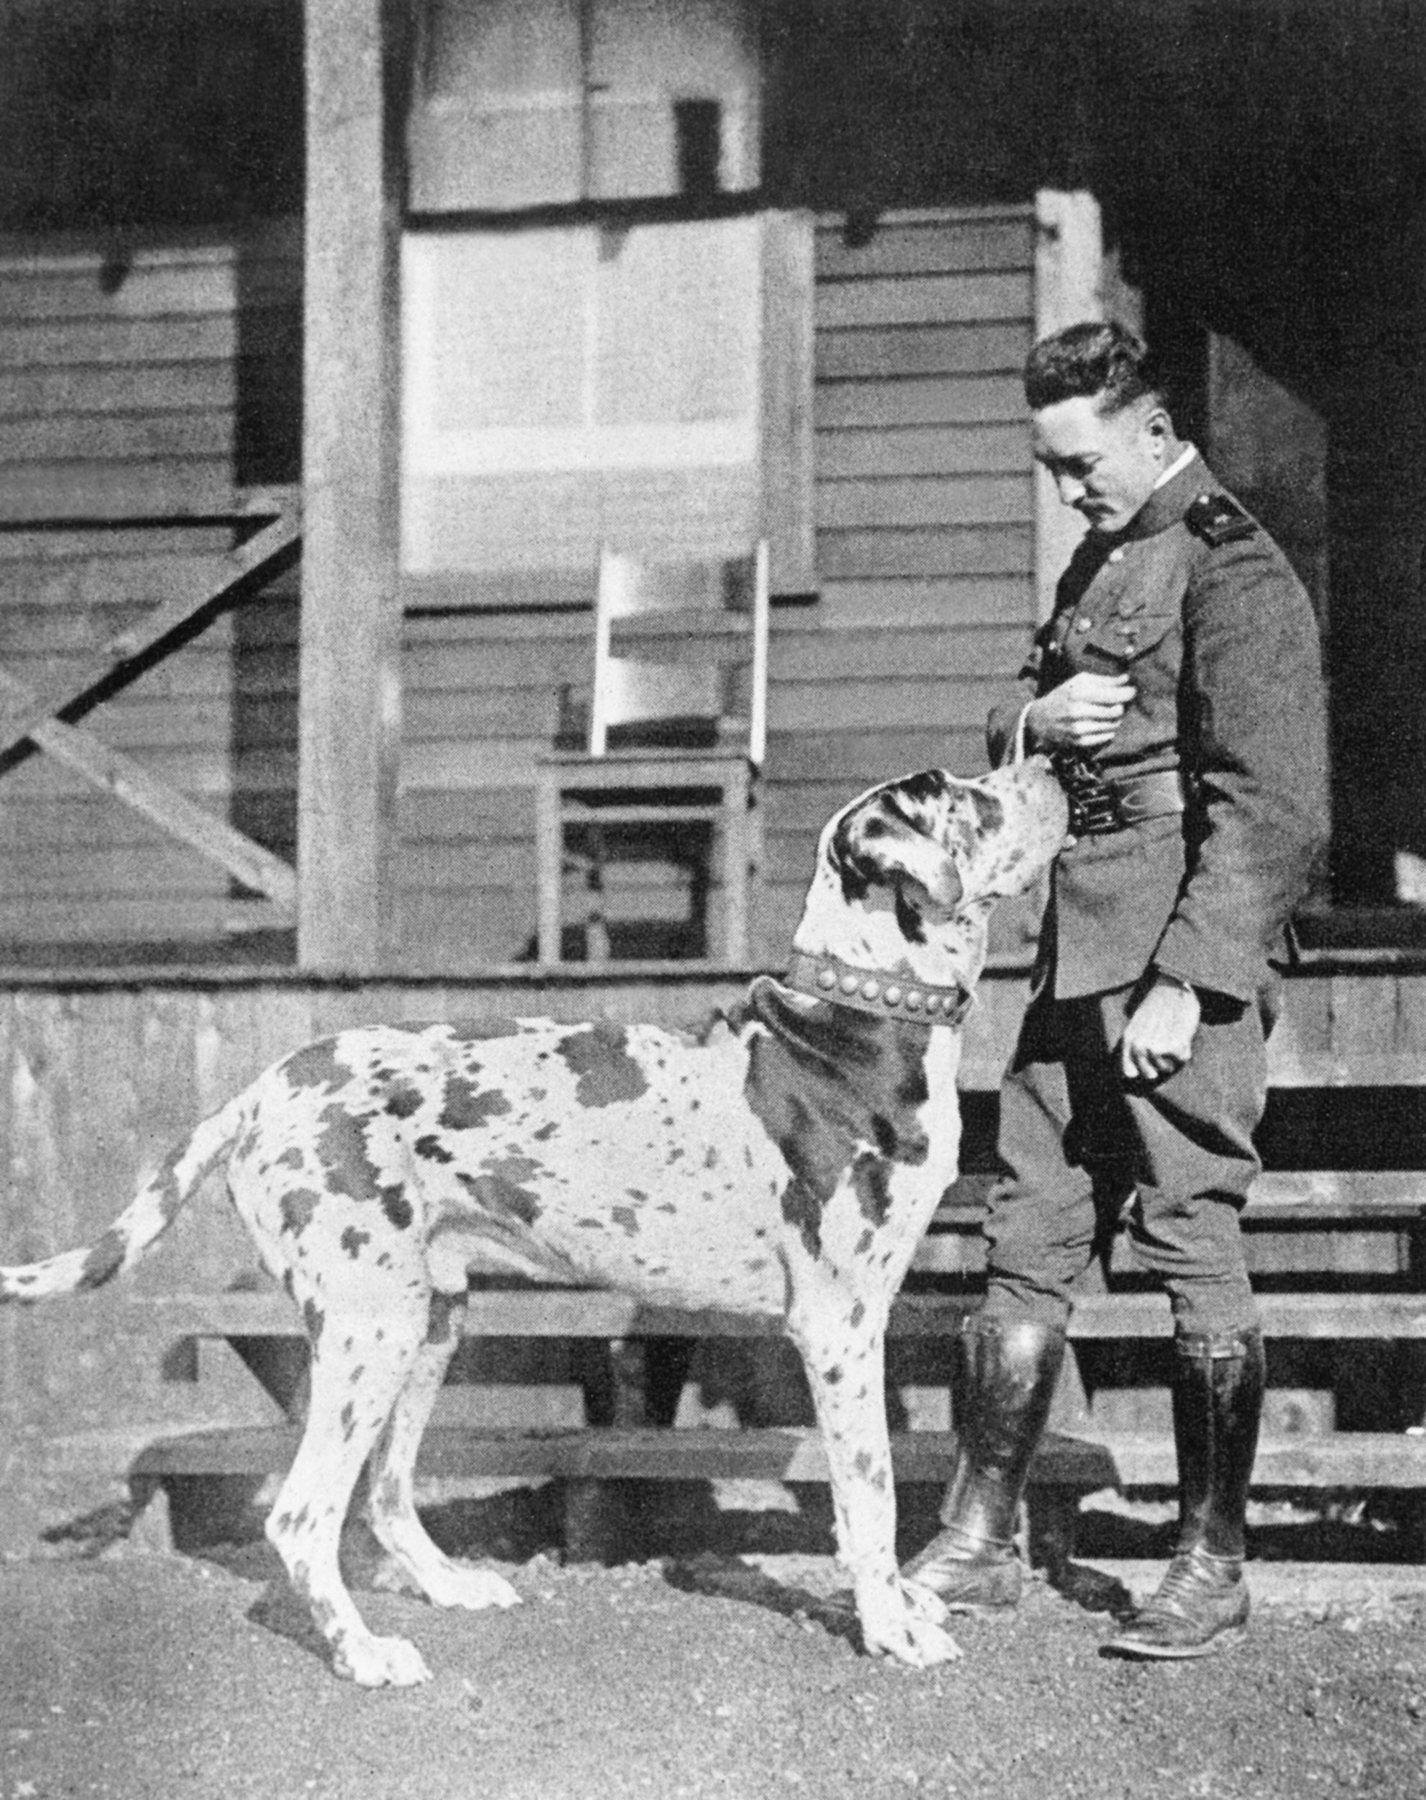 In an undated photograph, Violet, the Great Dane mascot of U.S. Naval Air Station Halifax, Nova Scotia, and Lieutenant Richard Evelyn Byrd Jr., USN, the naval station's commanding officer, discuss the ownership of something in the lieutenant's hand. PHOTO: Courtesy of Shearwater Aviation Museum